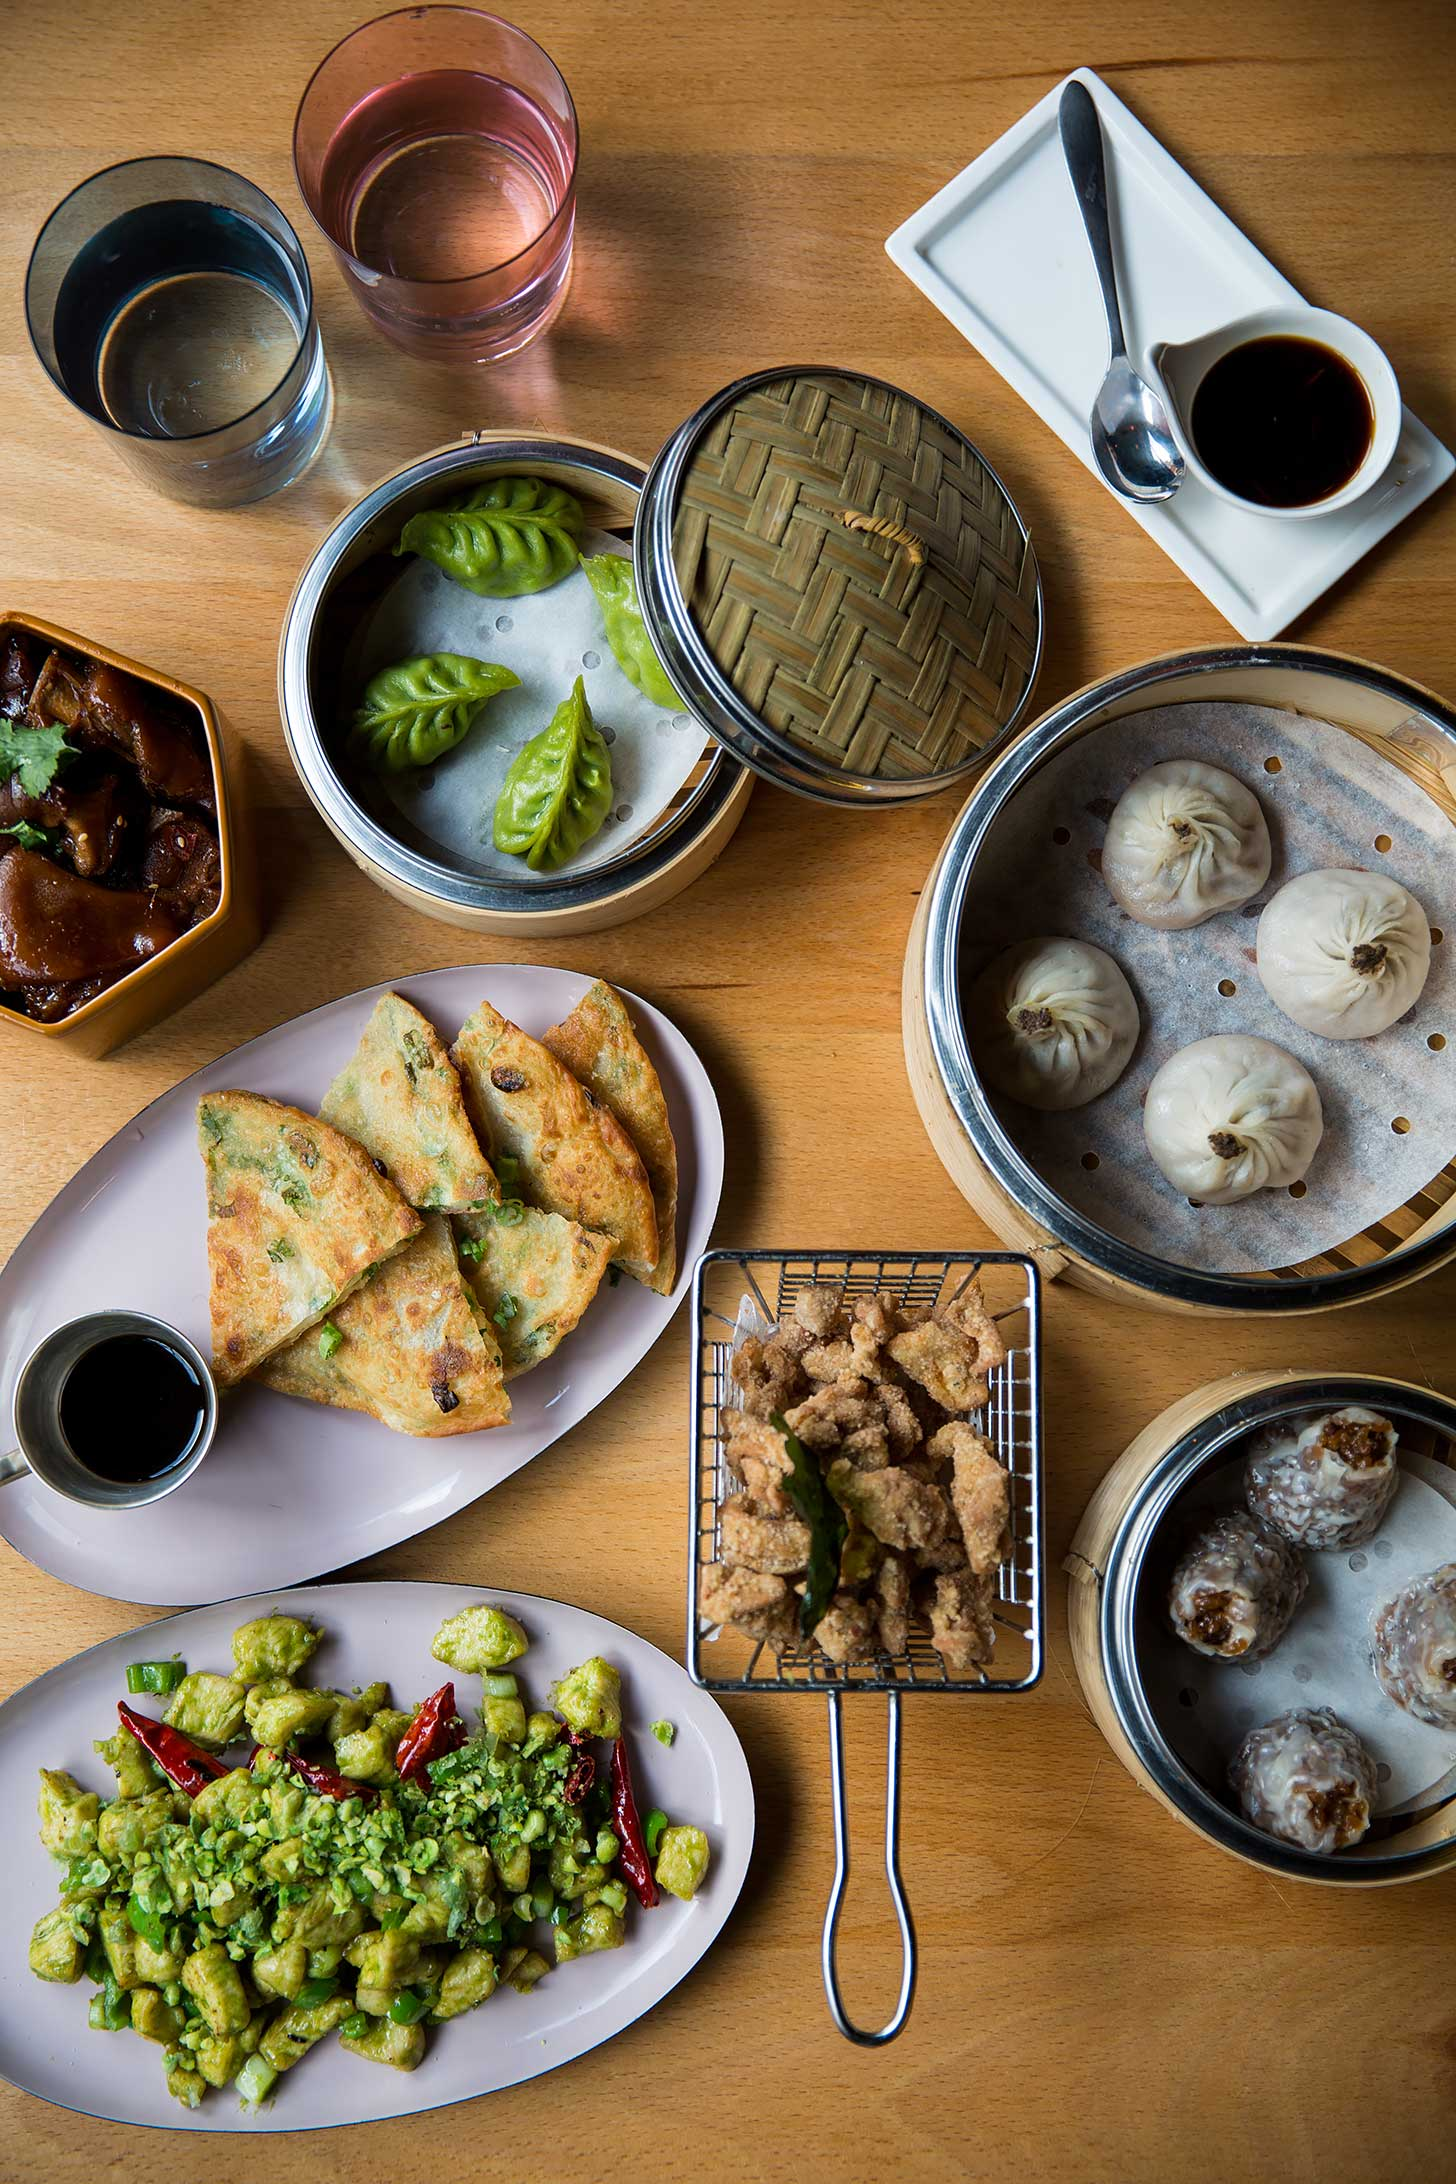 Best-Chinese-Food-NYC-Carma-Asian-Tapas-and-Carma-East